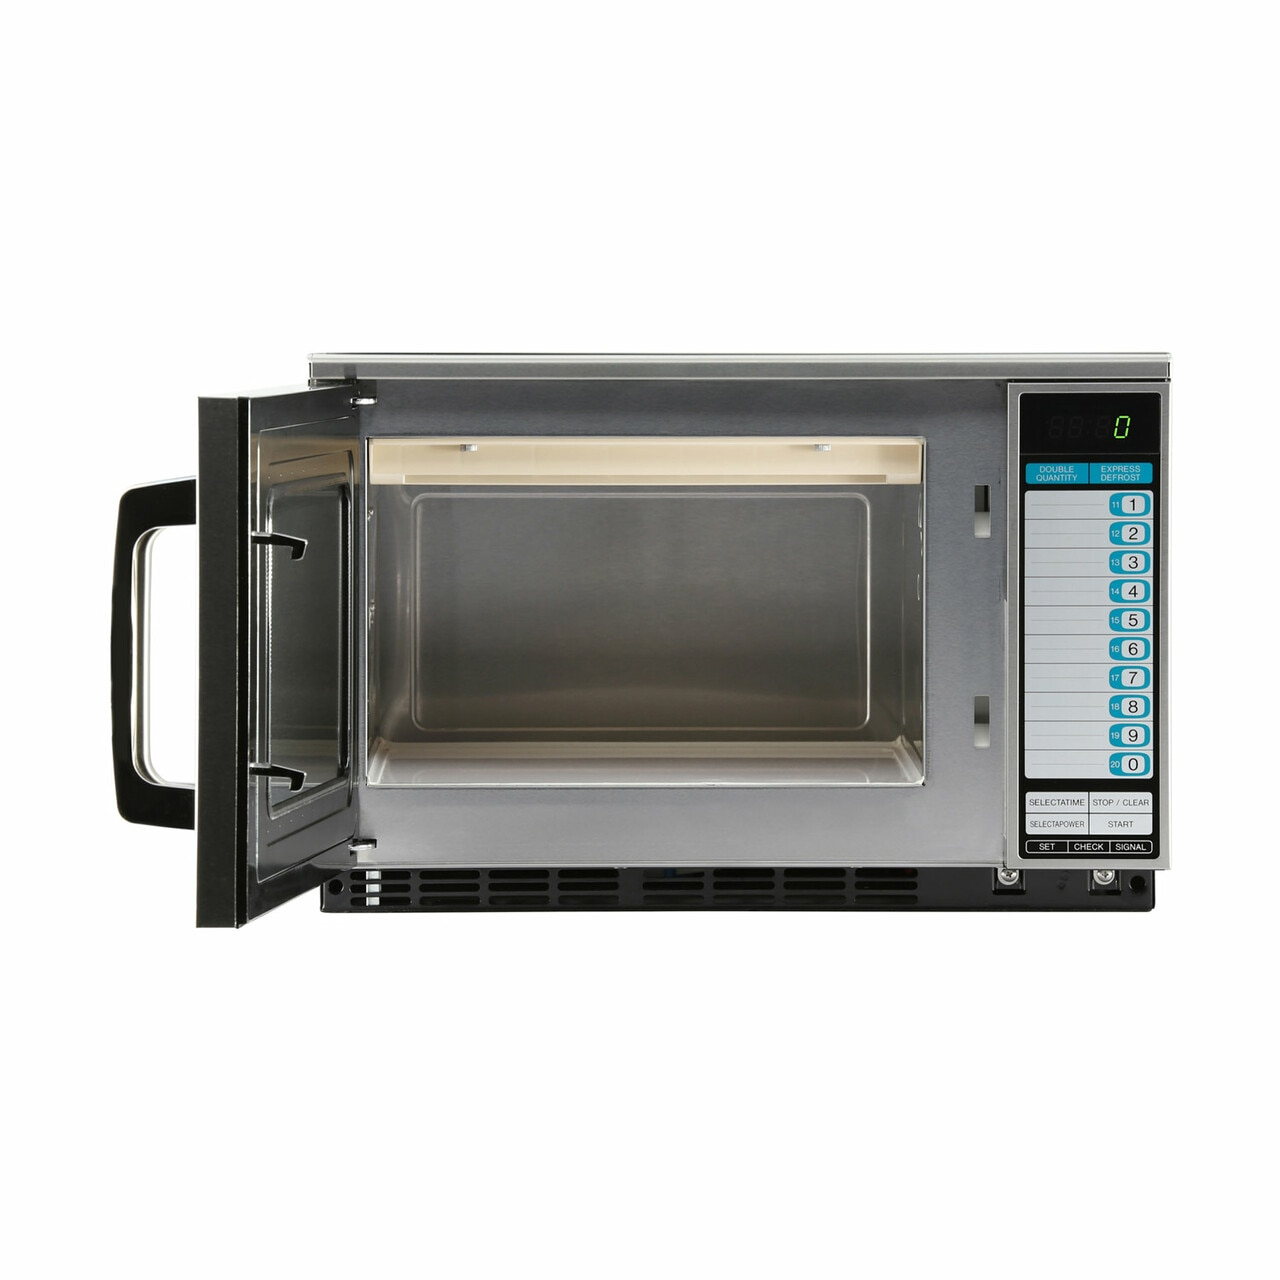 Sharp R25JTF Heavy-Duty Commercial Microwave Oven with 2100 Watts – front view with door open